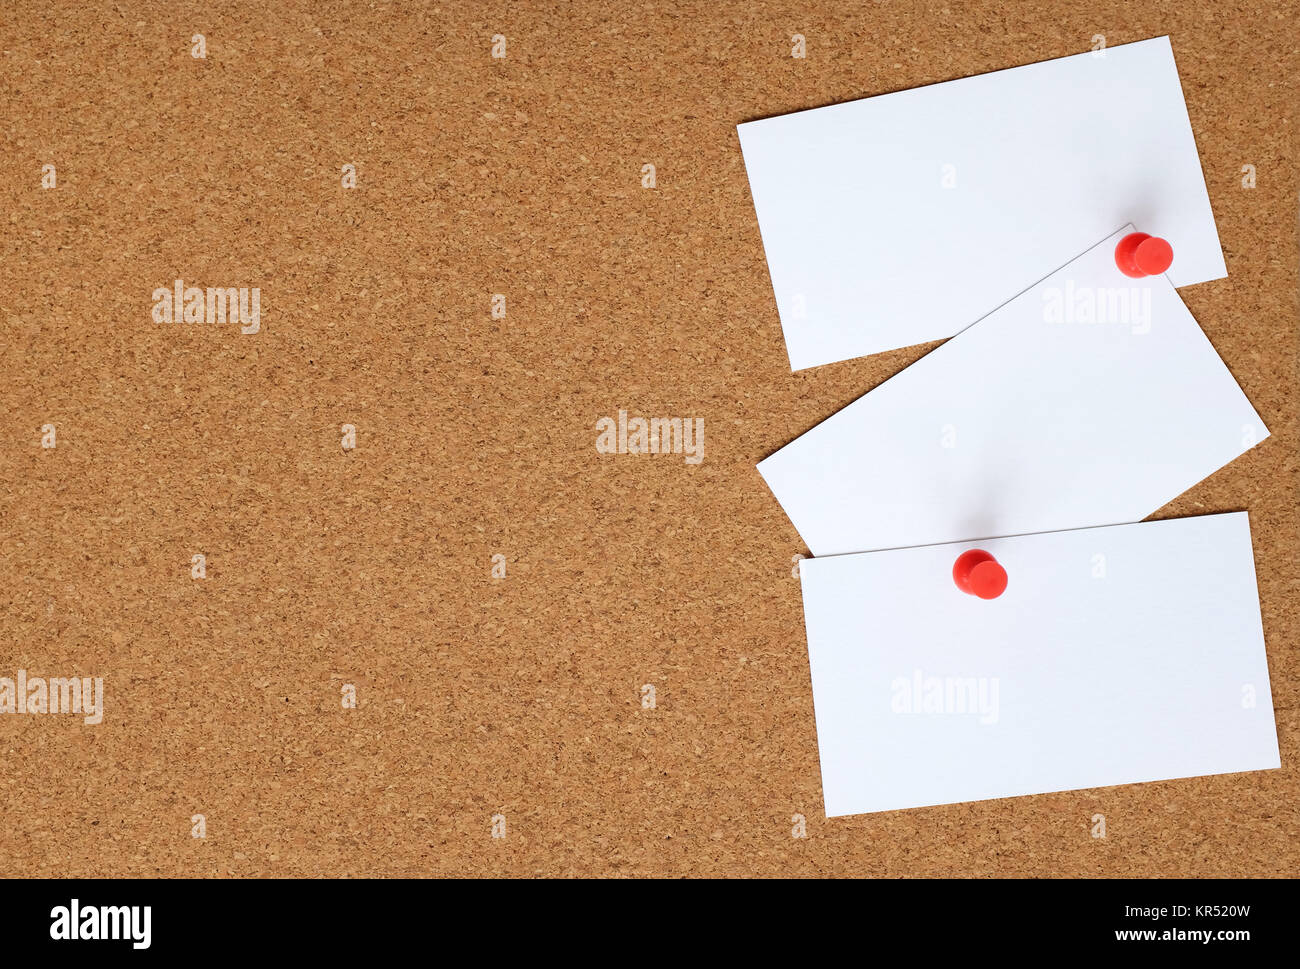 Cork board with three white cards pinned to it - Stock Image